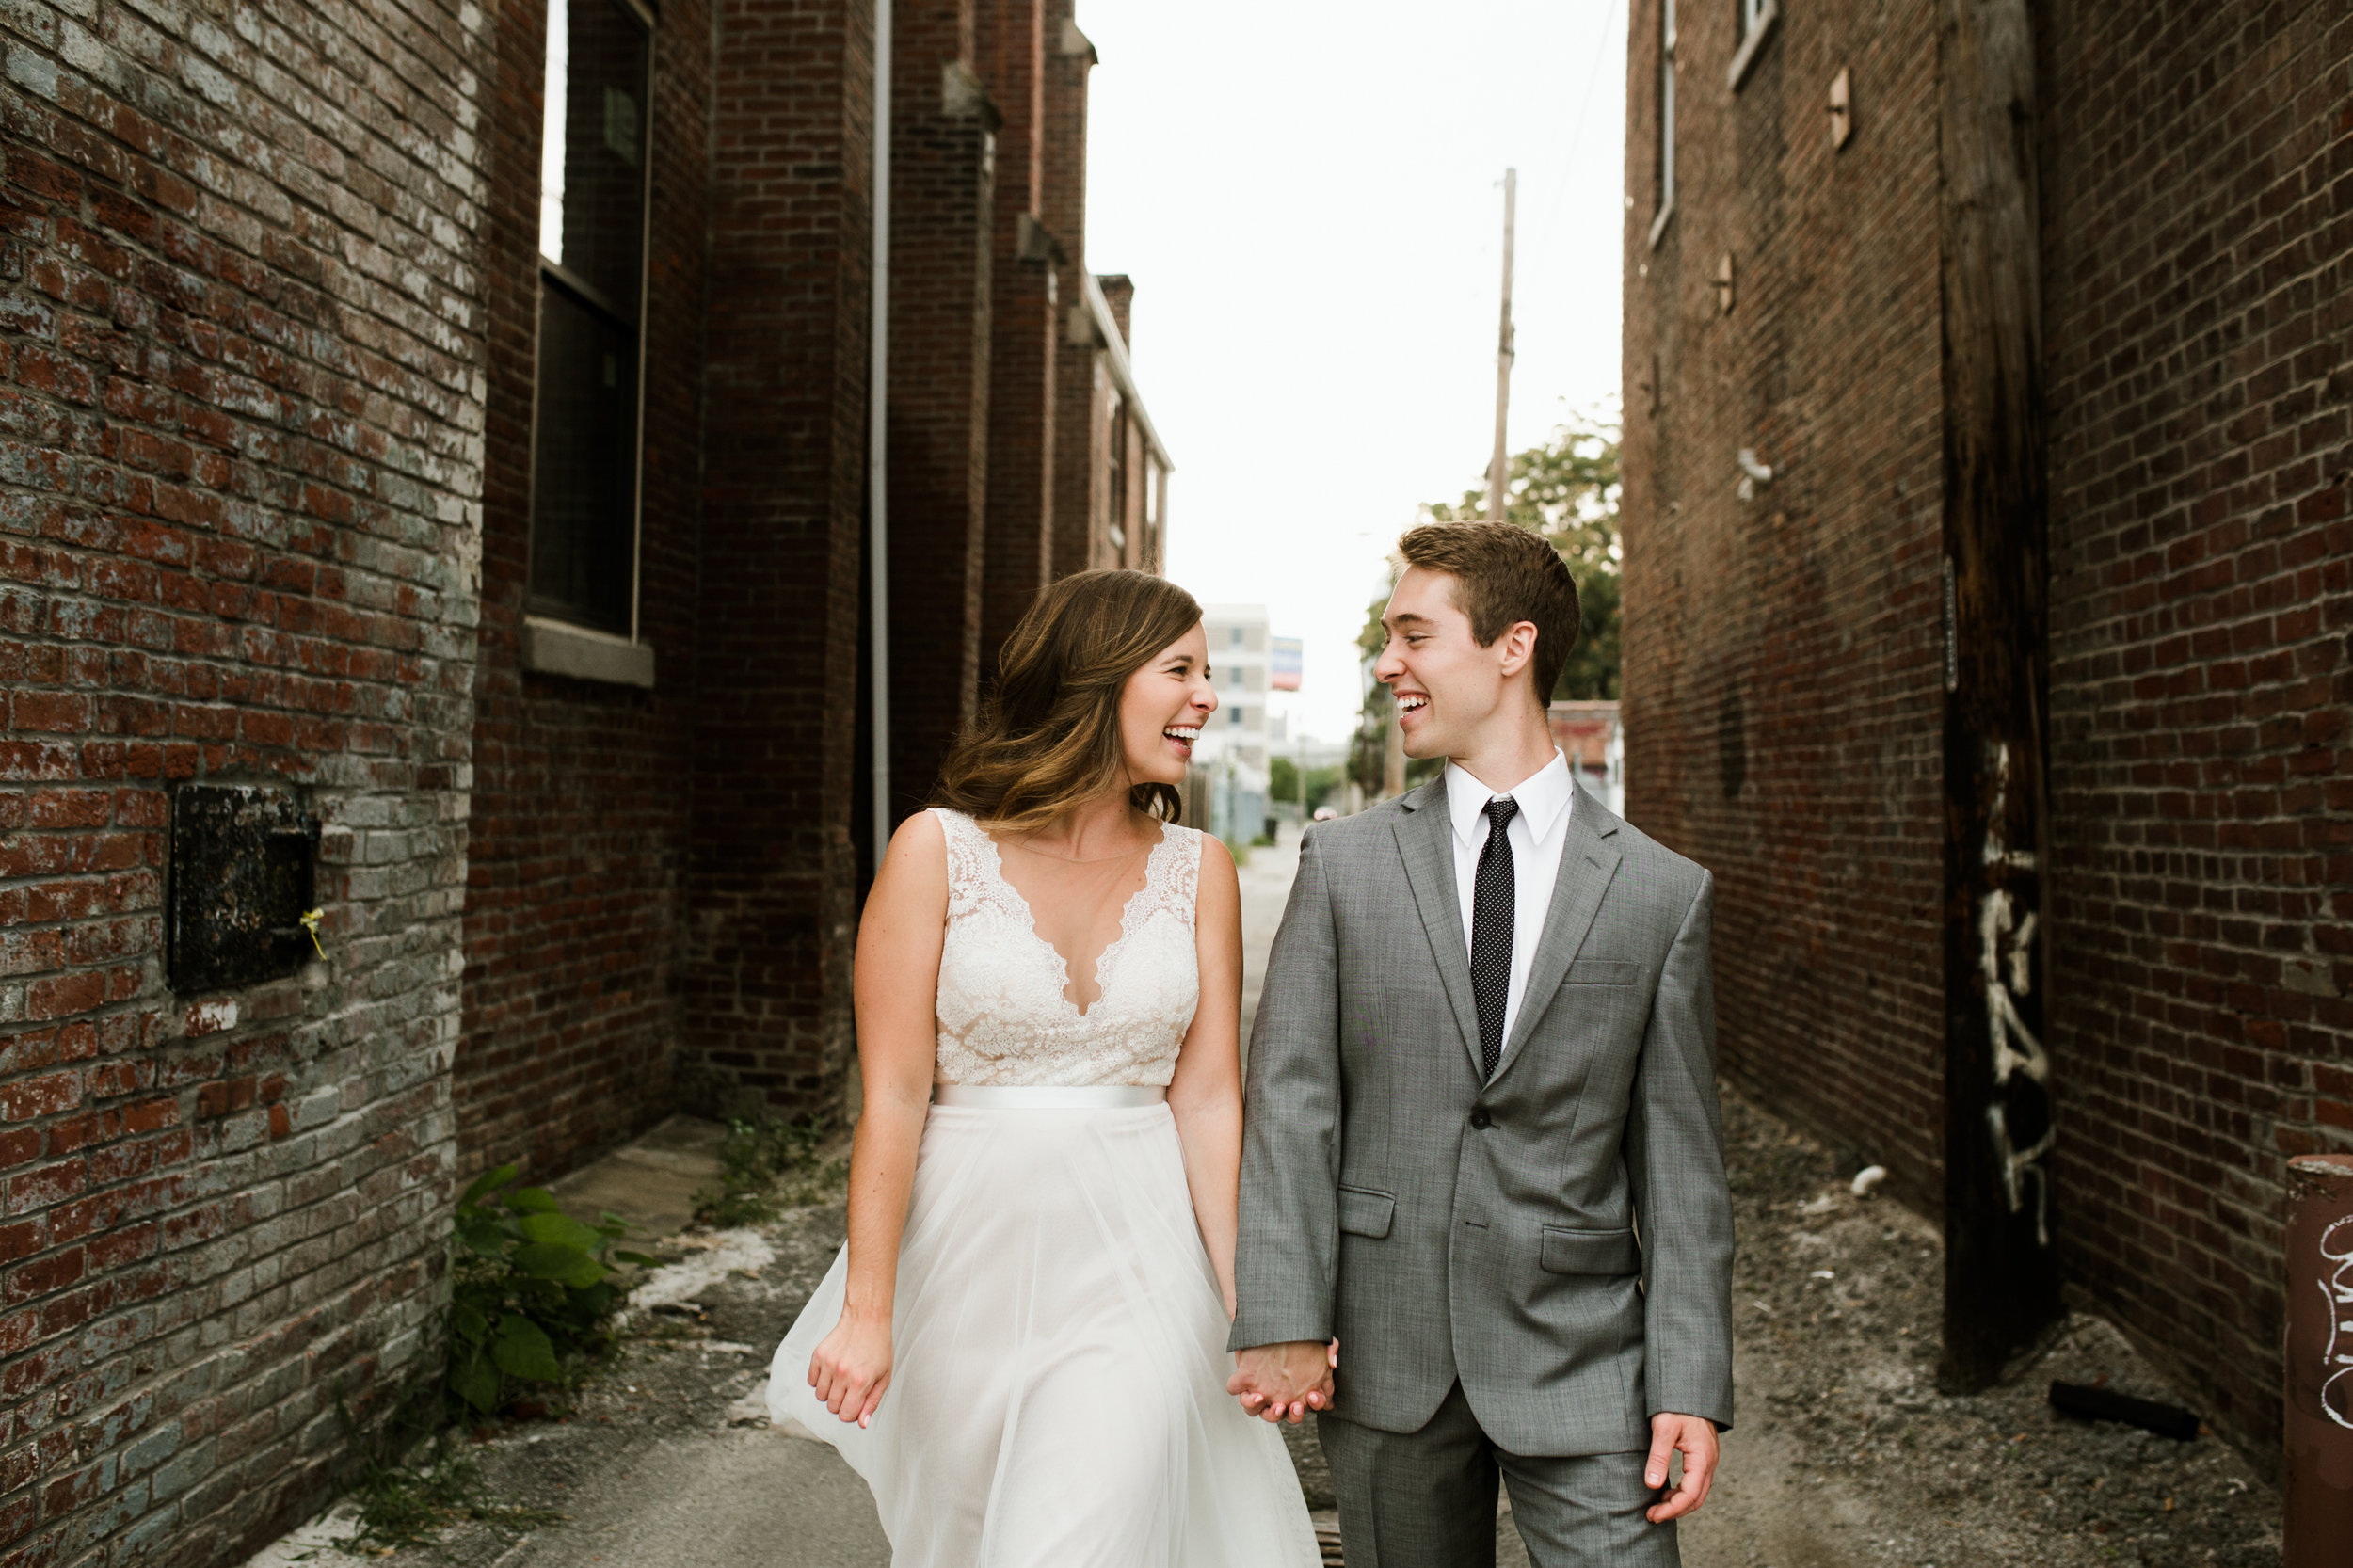 Amanda & Dave Anniversary 2018 Crystal Ludwick Photo Louisville Wedding Photographer Kentucky Wedding Photographer (17 of 43).jpg